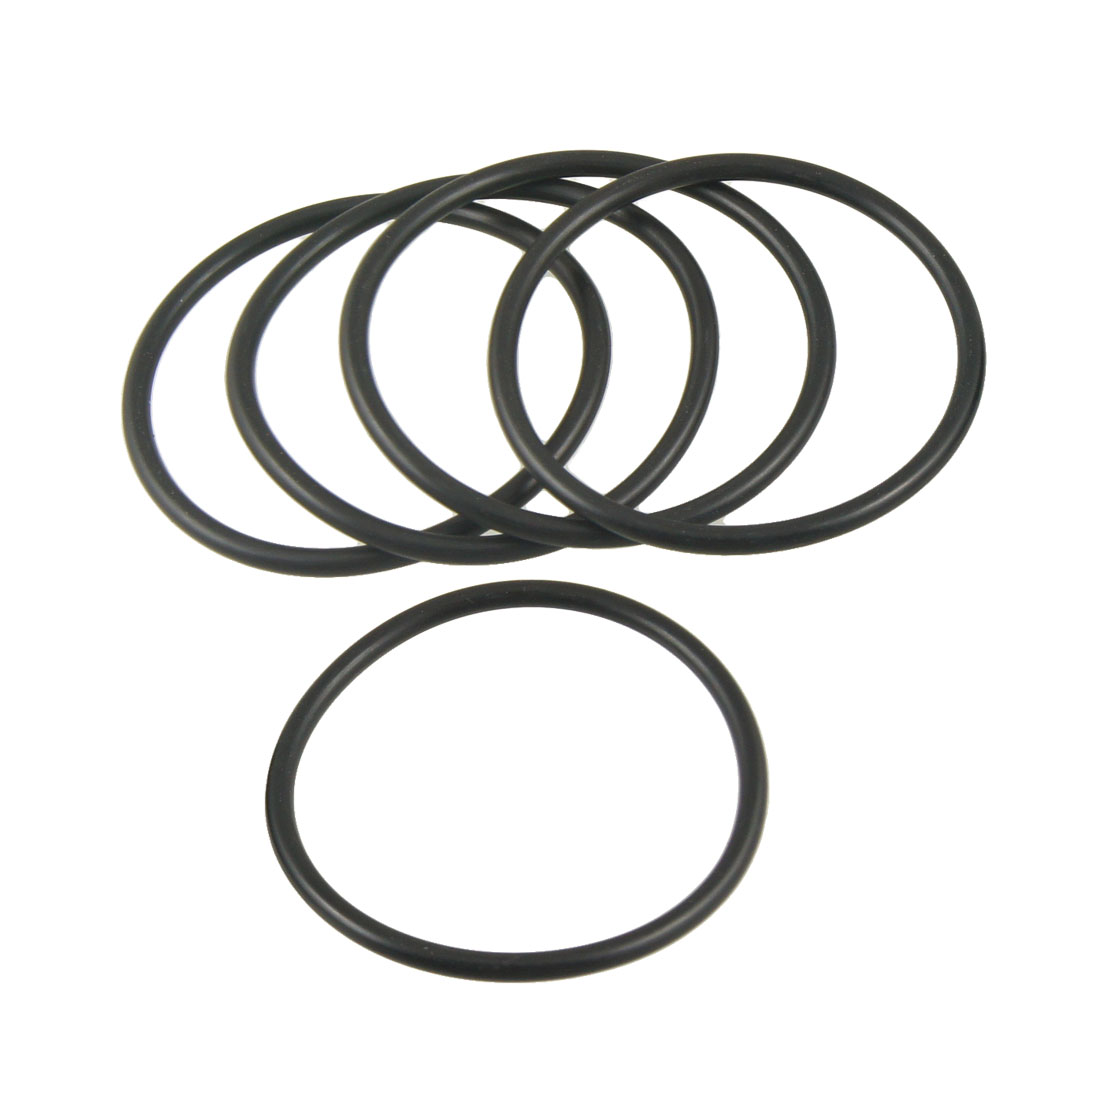 5 Pcs 60mm x 3.5mm x 53mm Flexible Rubber O Ring Seal Washer Black